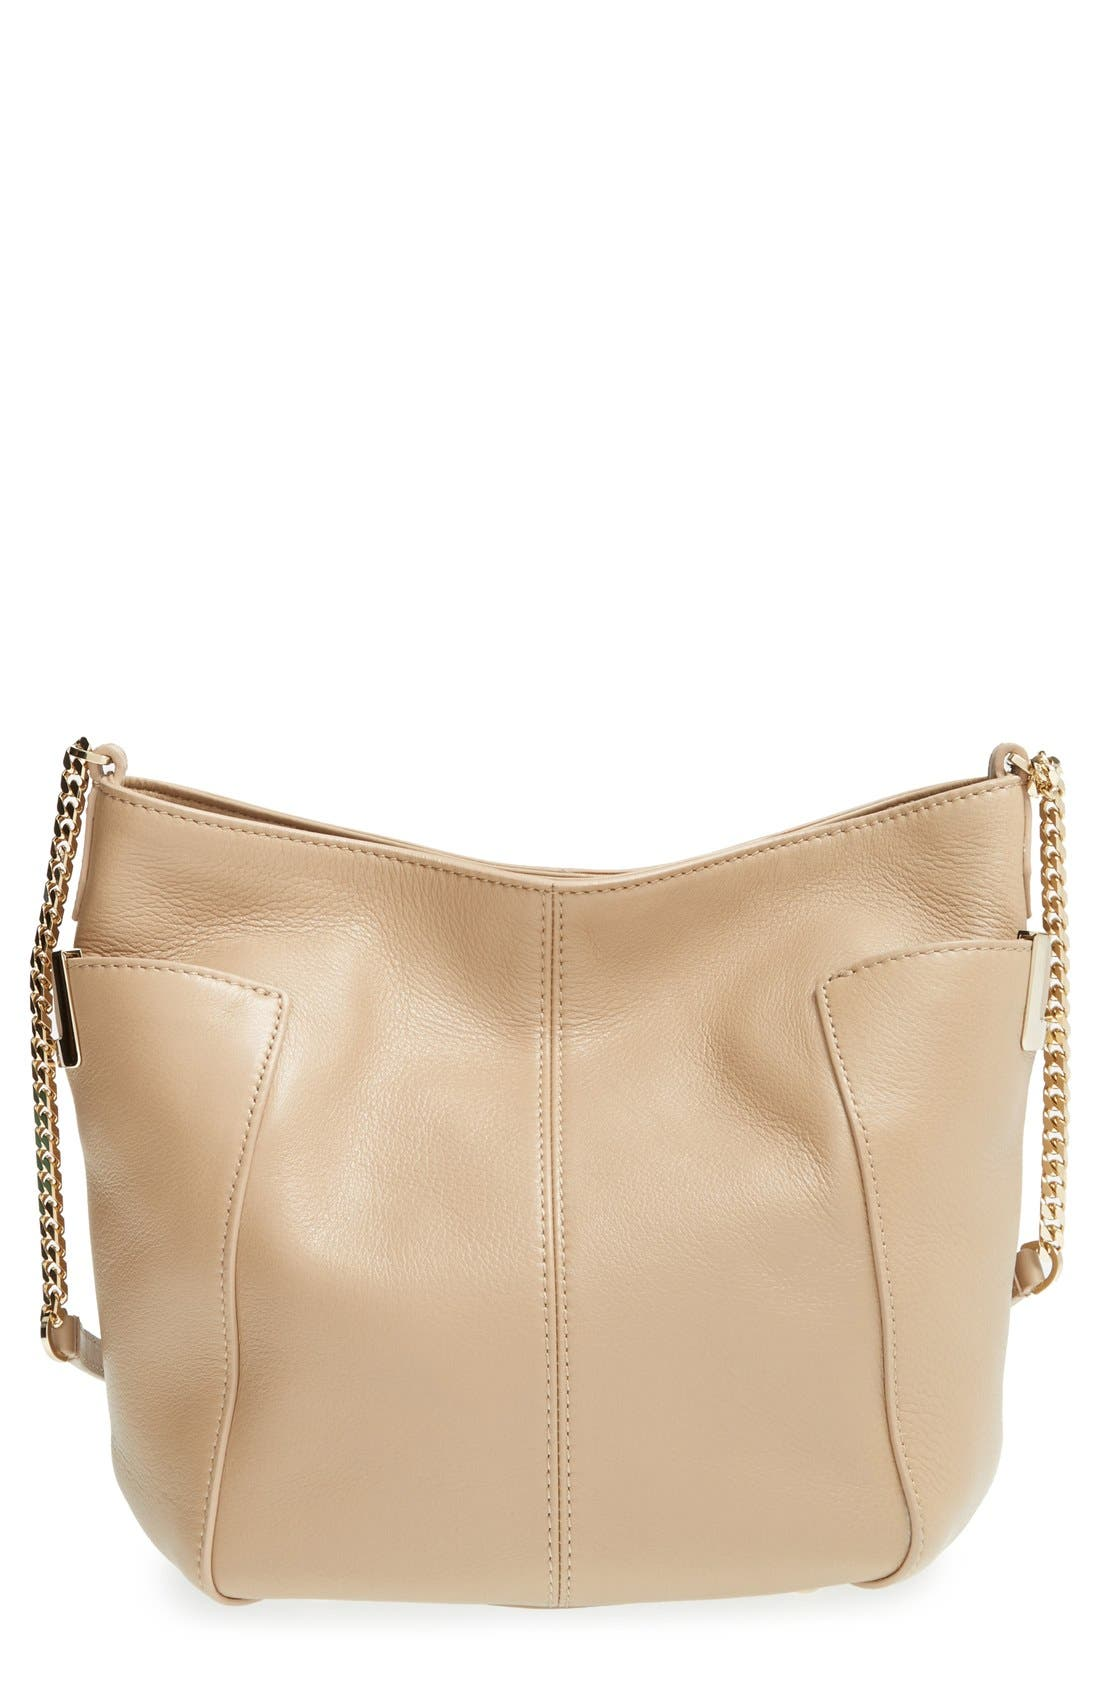 Main Image - Jimmy Choo 'Small Anabel' Leather Crossbody Bag